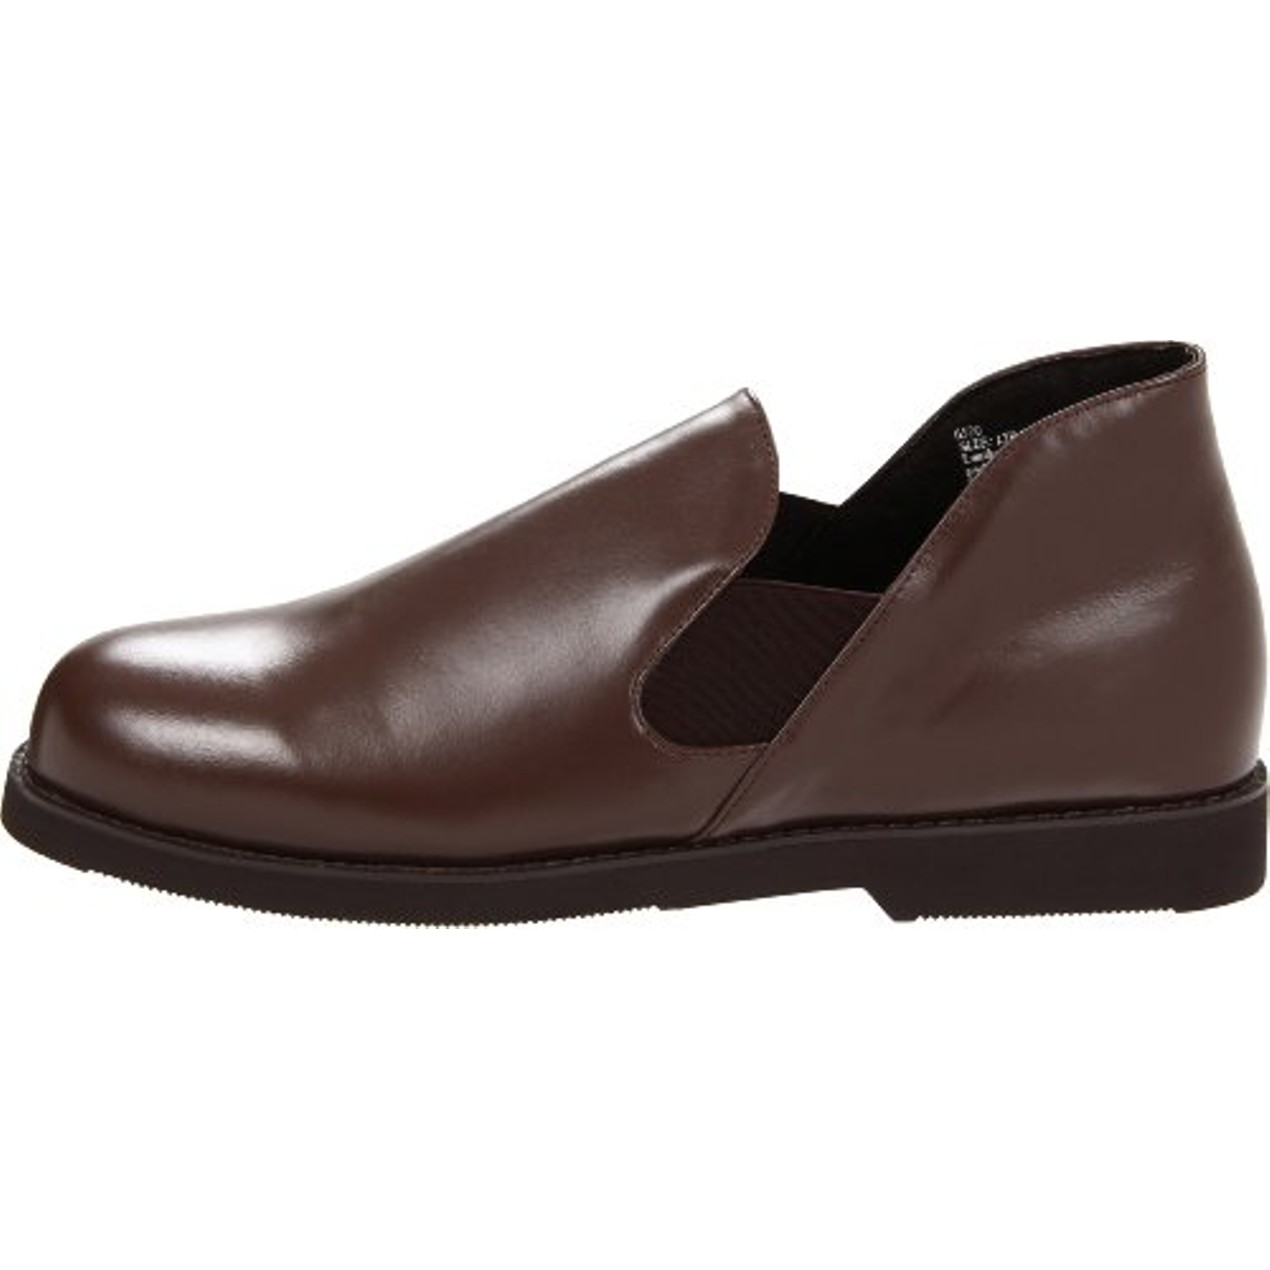 3725cdd20557 Tamarac by Slippers International Men s Romeo Slip-On Loafer - Tanga